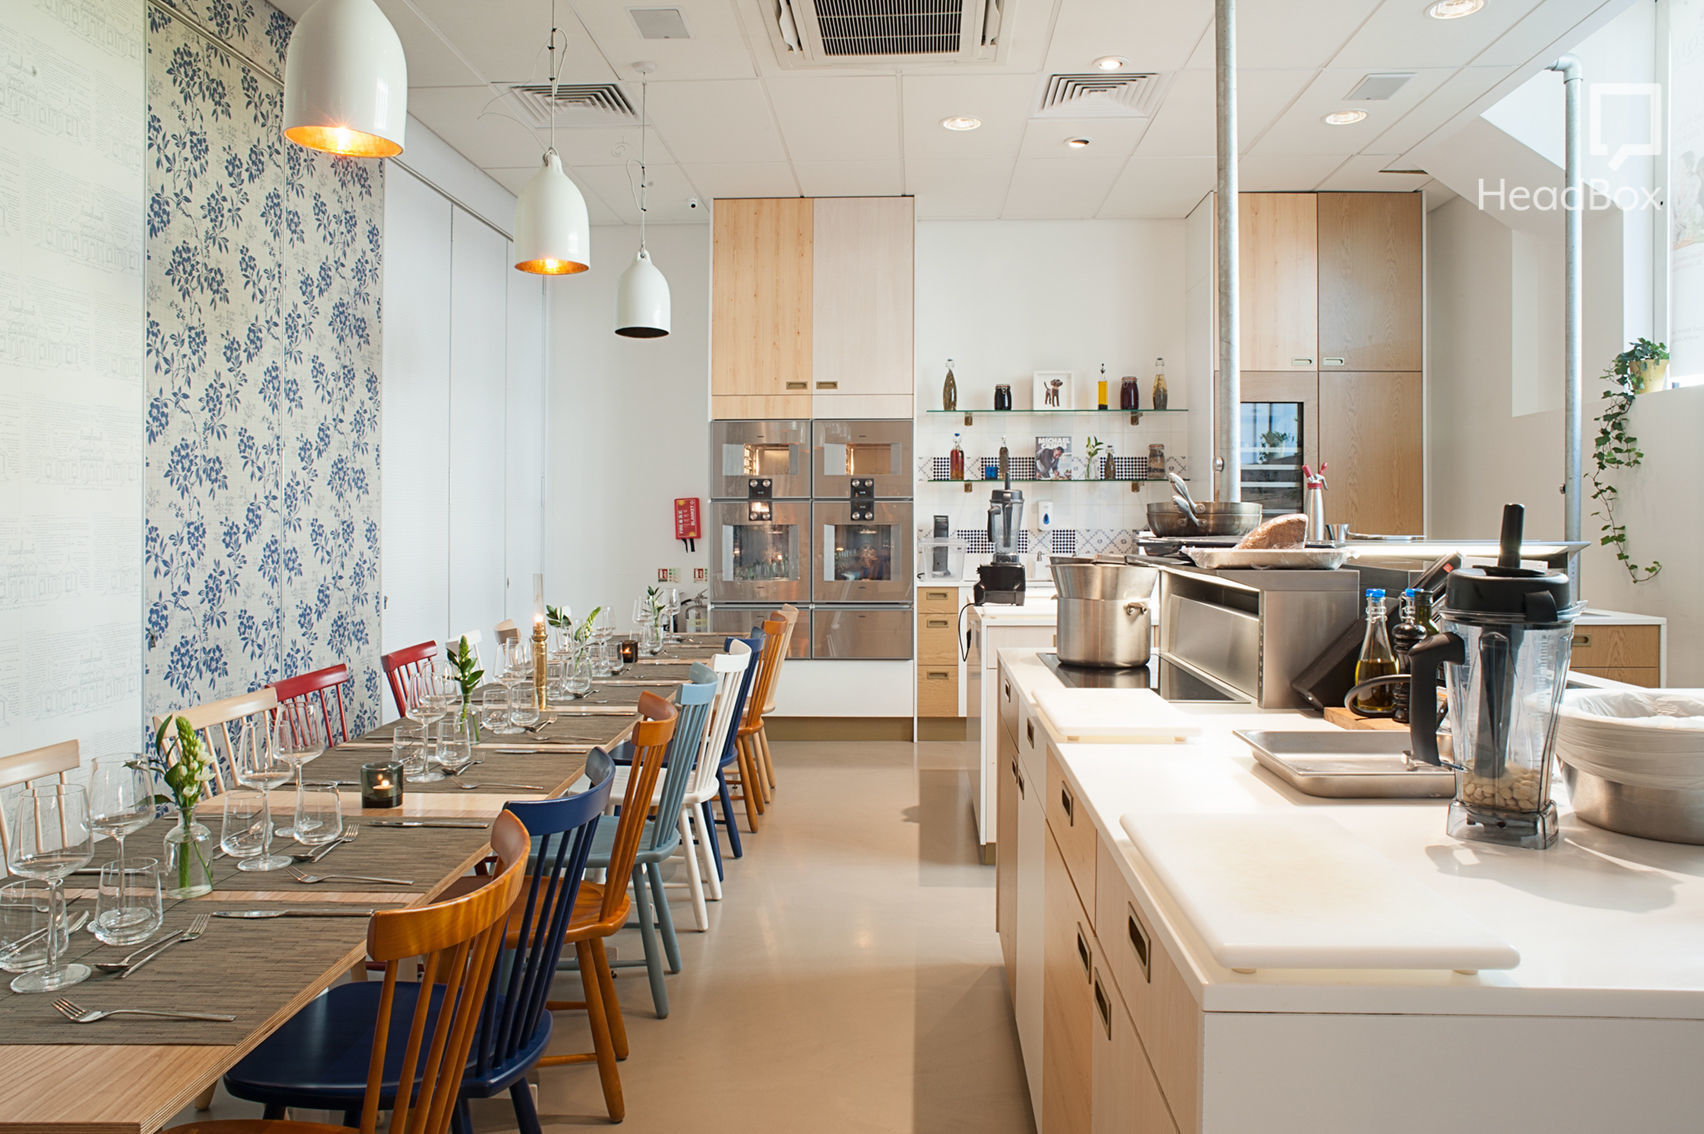 A kitchen venue in London the perfect event to consider when planning a corporate team away day. The venue has kitchen on the right hand side and then dining tables on the left hand side where your guests can enjoy the food they have prepared